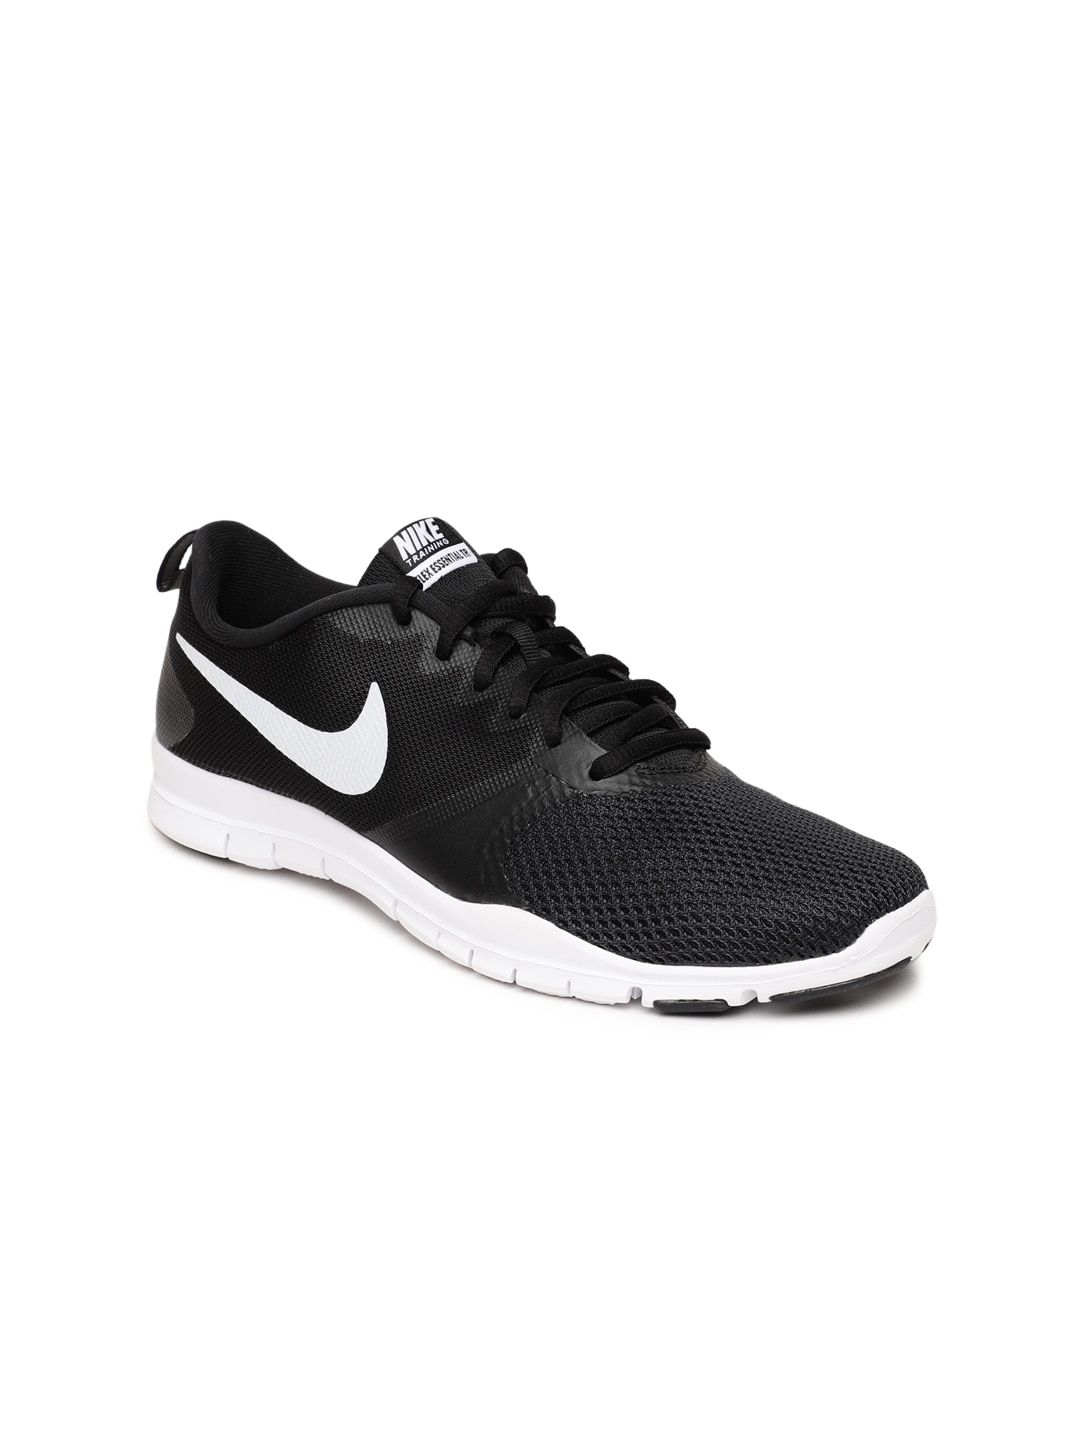 3b90c88de9752 Nike Free Running Shoes - Buy Nike Free Running Shoes online in India